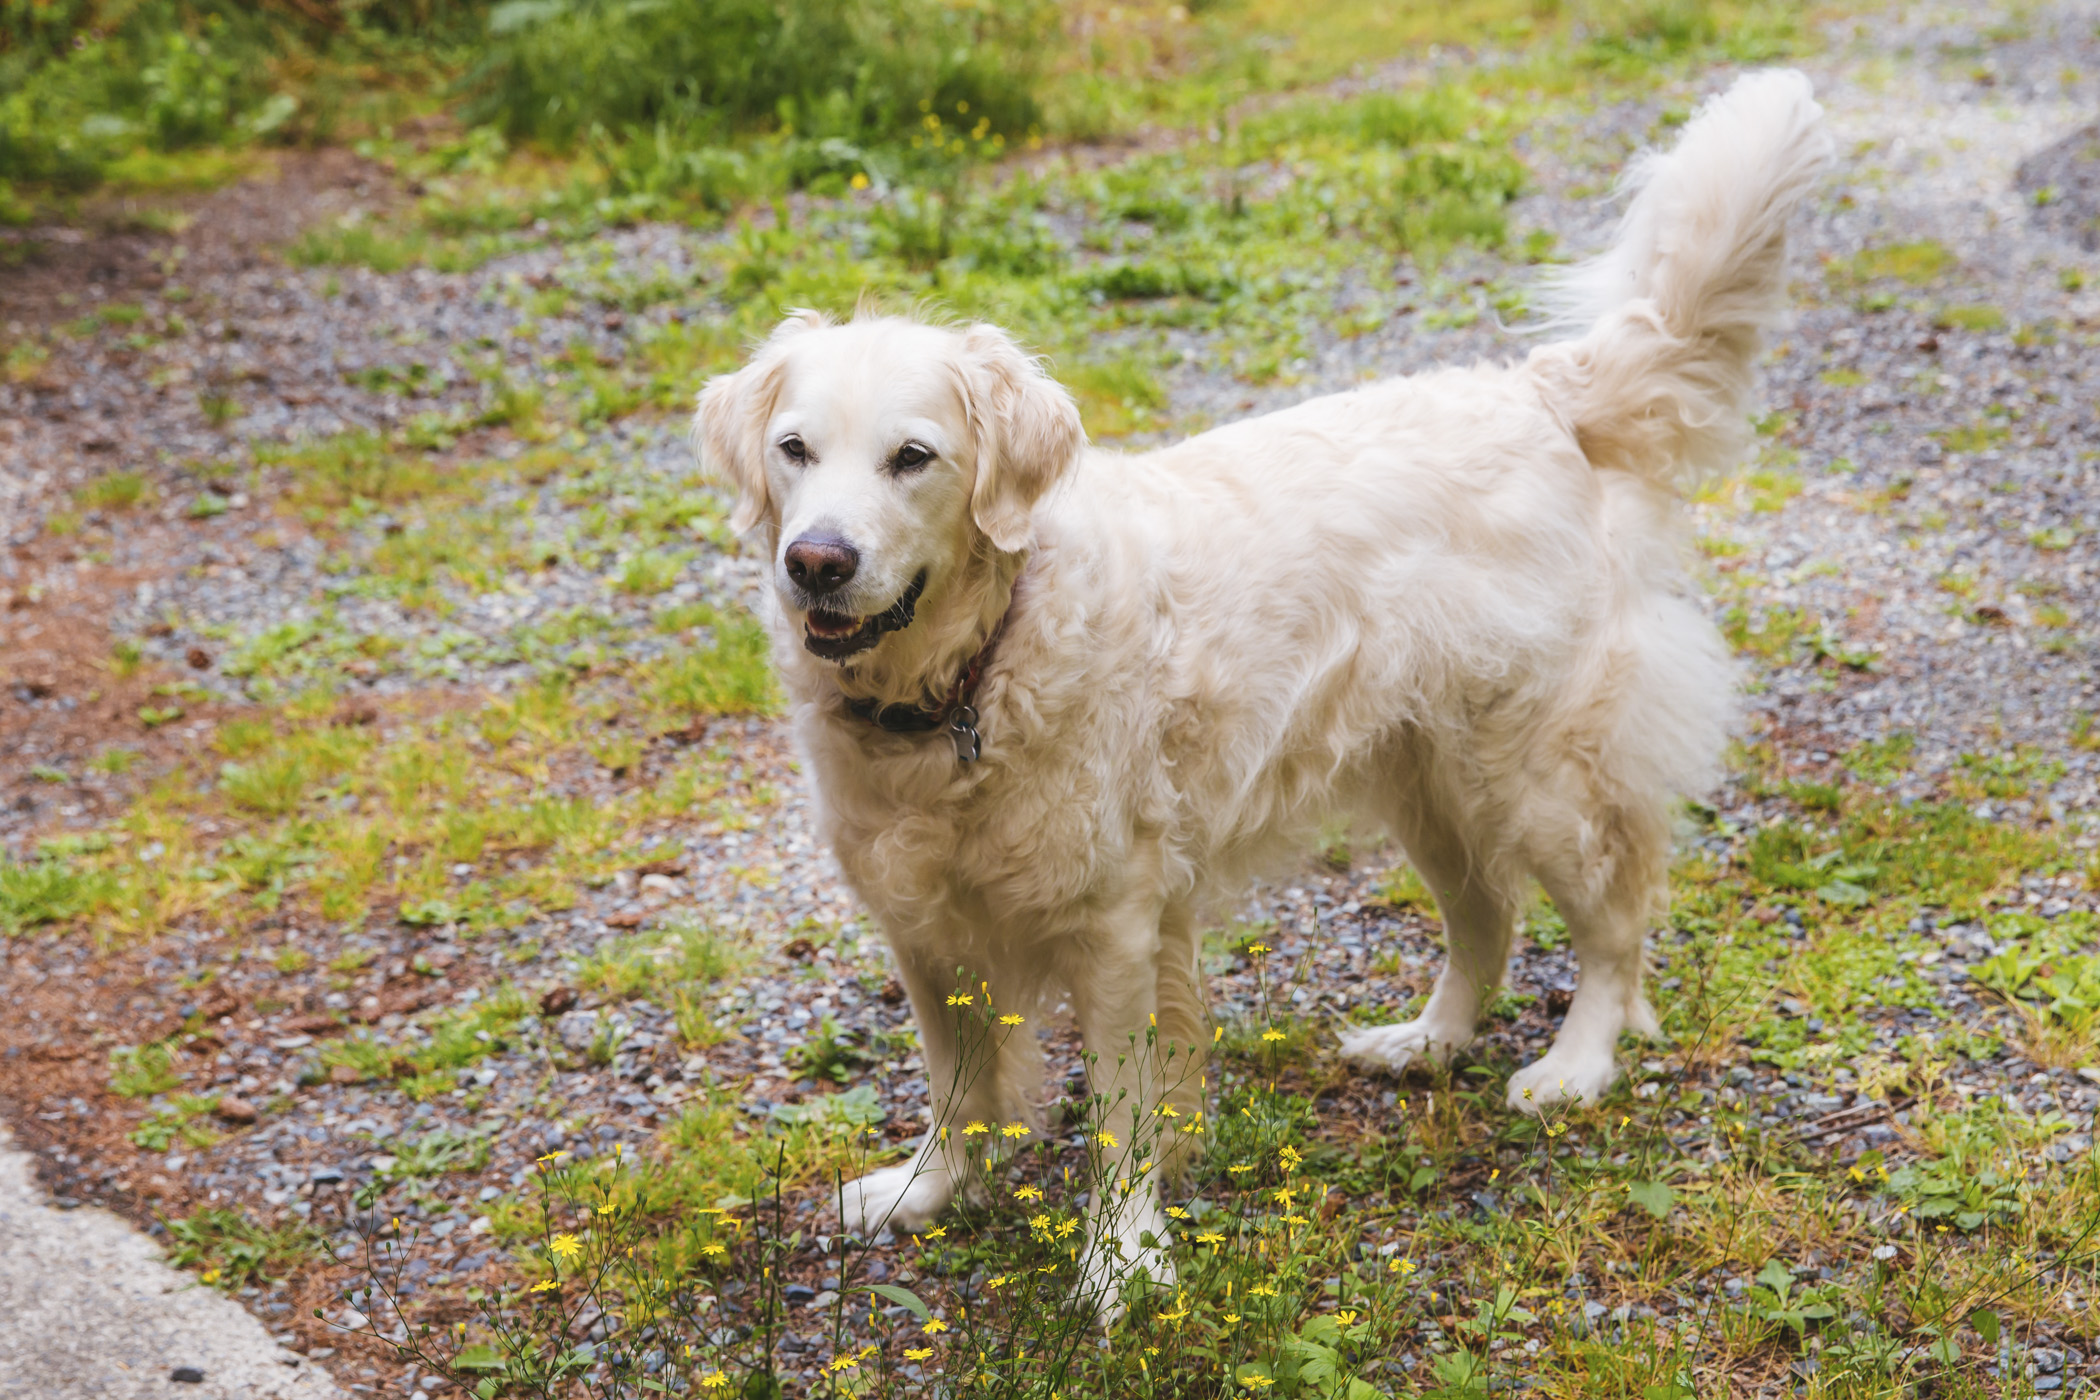 Meet Polar, a five-year-old English Cream Golden Retriever! Polar likes to eat (he's very food driven) and to travel. He's been to 17 states and counting! He dislikes being left alone and doesn't appreciate watching his friends and neighbors play without him.{ }The Seattle RUFFined Spotlight is a weekly profile of local pets living and loving life in the PNW. If you or someone you know has a pet you'd like featured, email us at hello@seattlerefined.com or tag #SeattleRUFFined and your furbaby could be the next spotlighted! (Image: Sunita Martini / Seattle Refined).